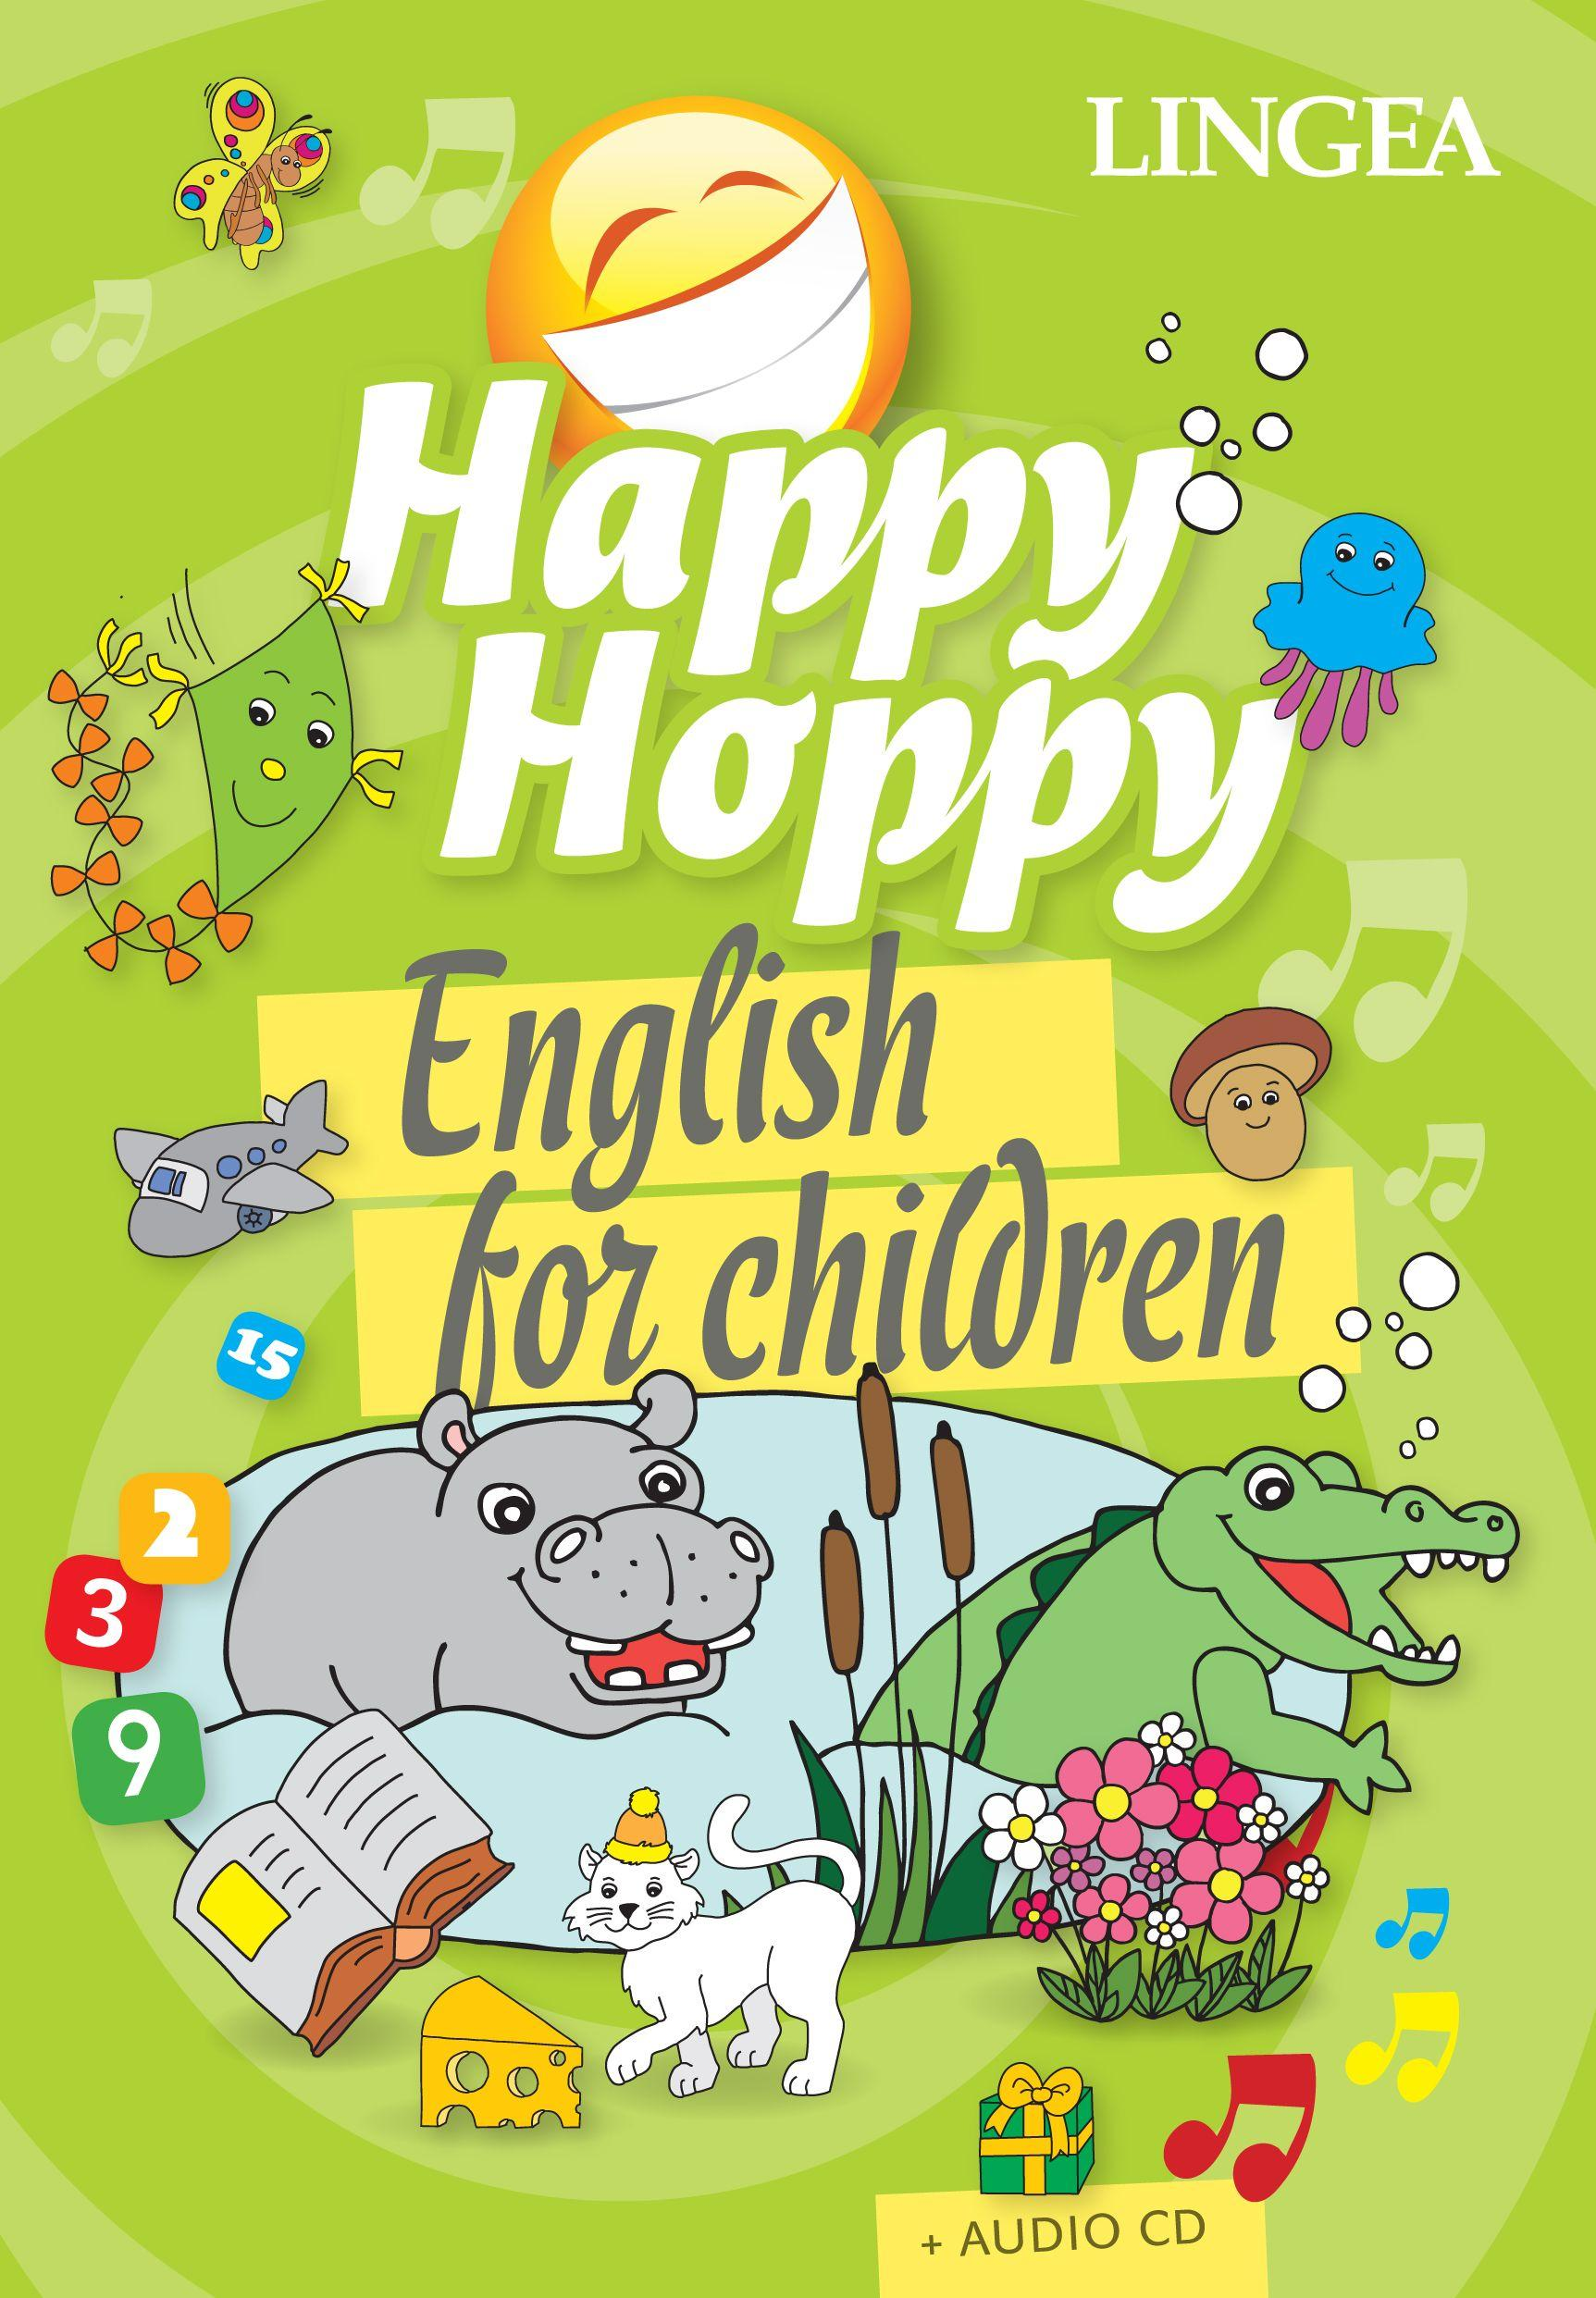 - - HAPPY HOPPY KÖNYV - ENGLISH FOR CHILDREN + AUDIO CD